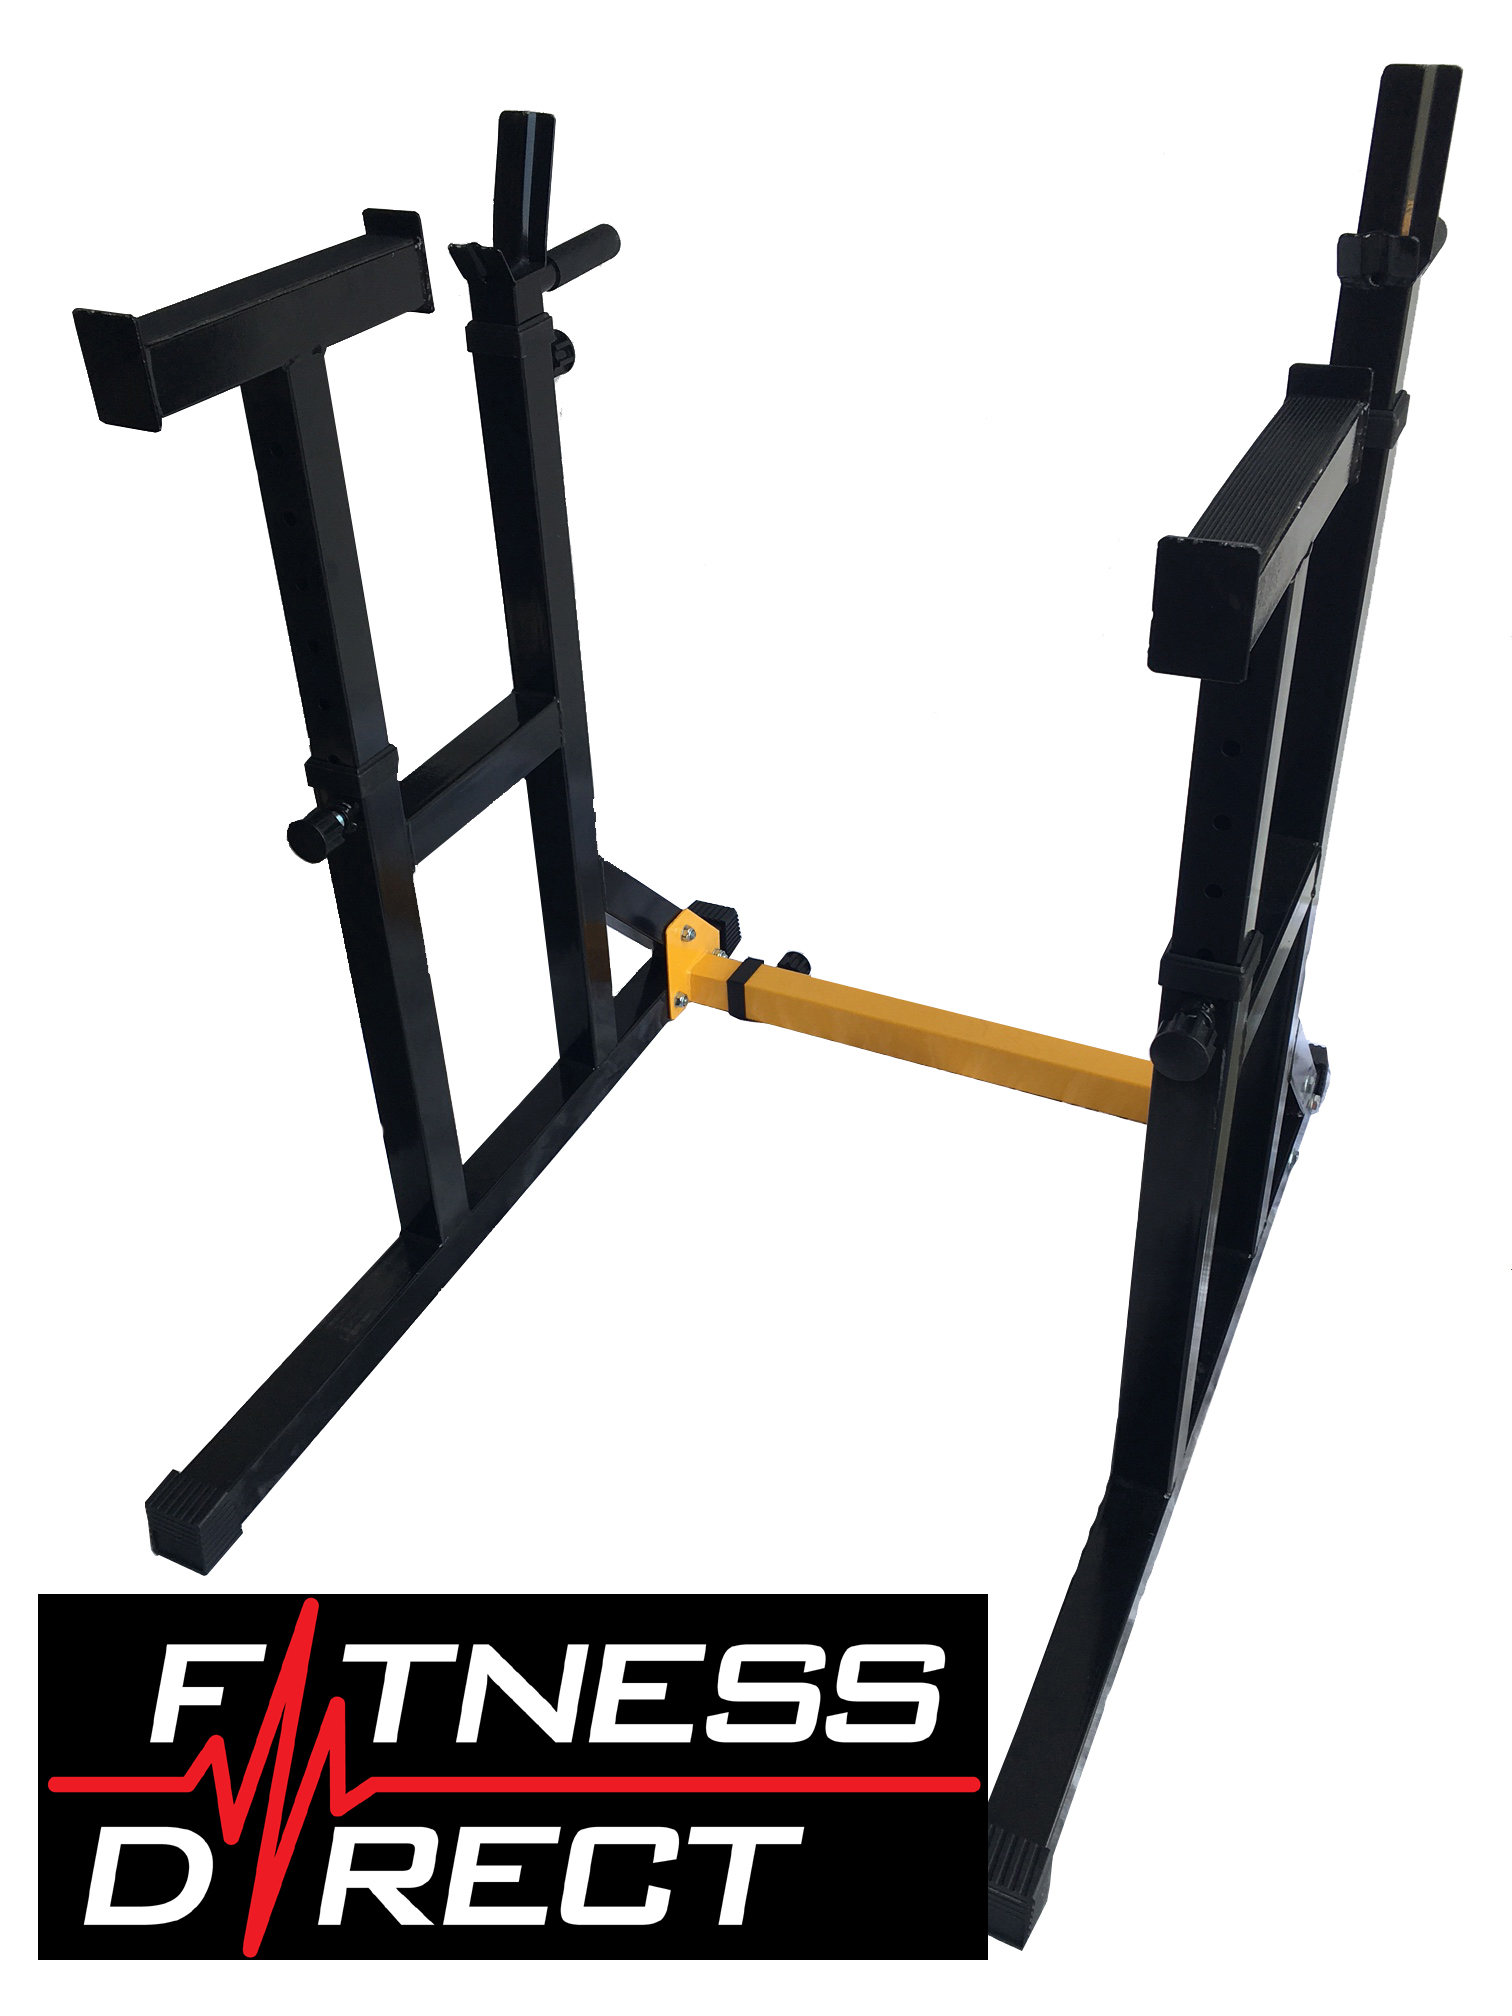 Fitness direct adjustable squat rack barbell stand dip